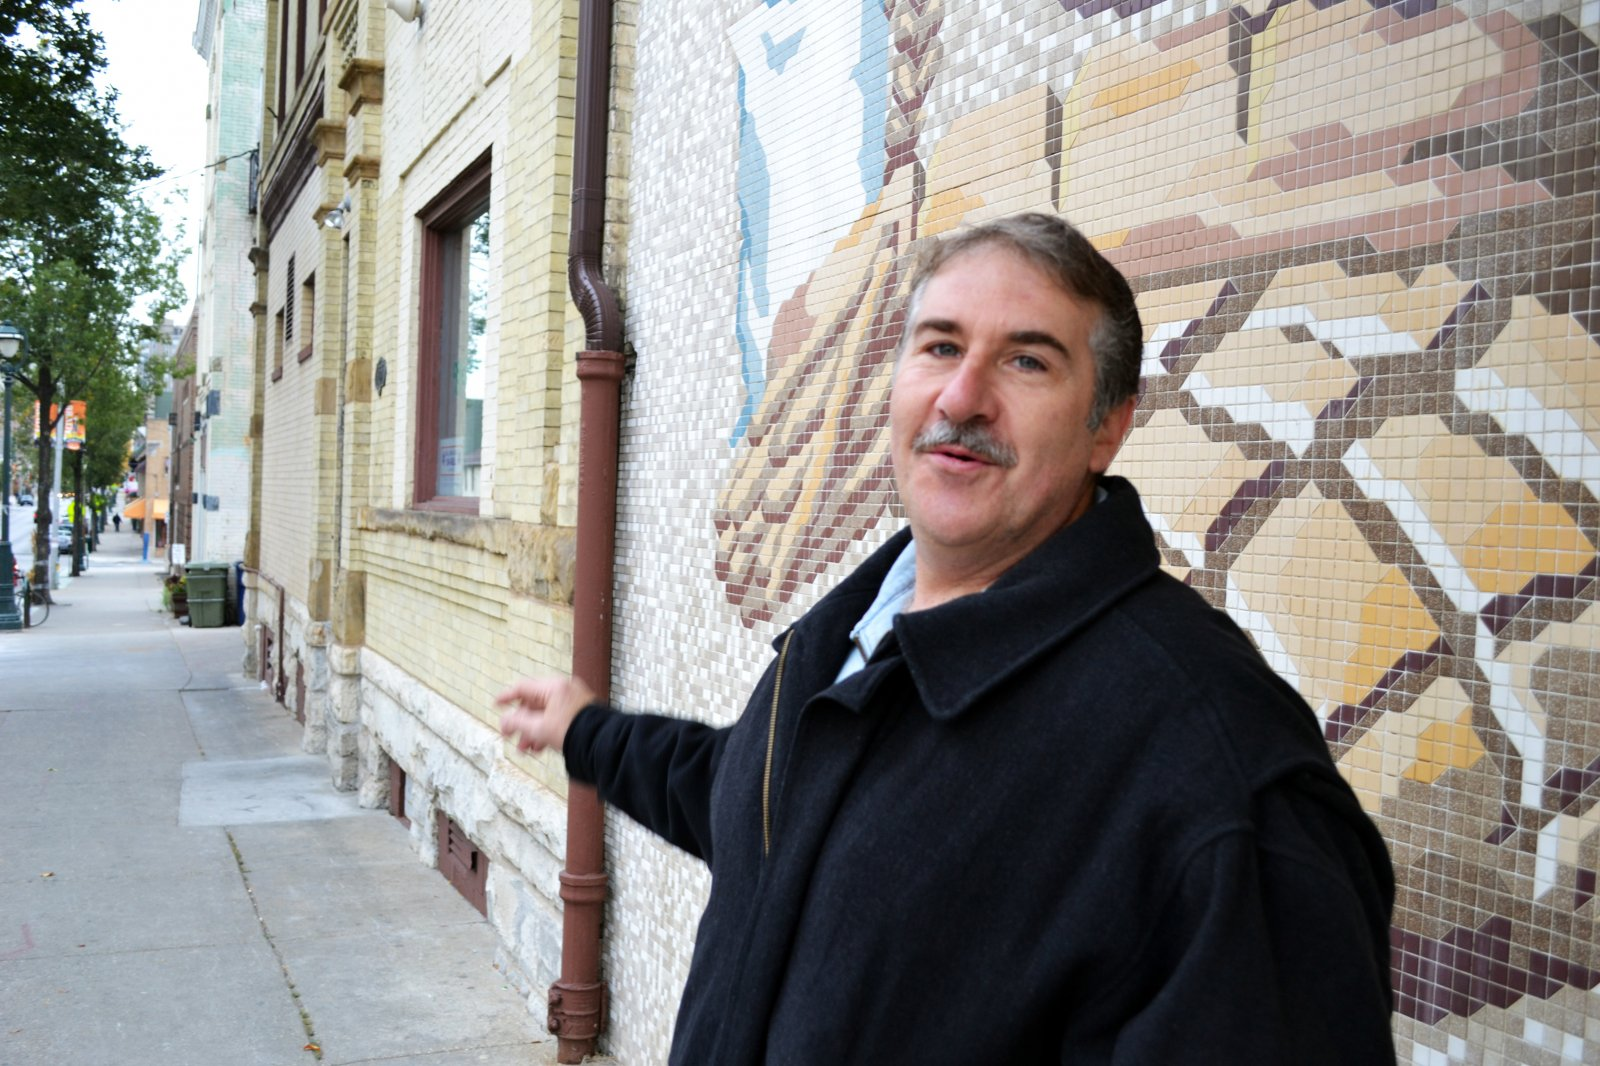 Frank explains the Italian and Polish hertitage in the neighborhood in front of Scortino\'s Bakery